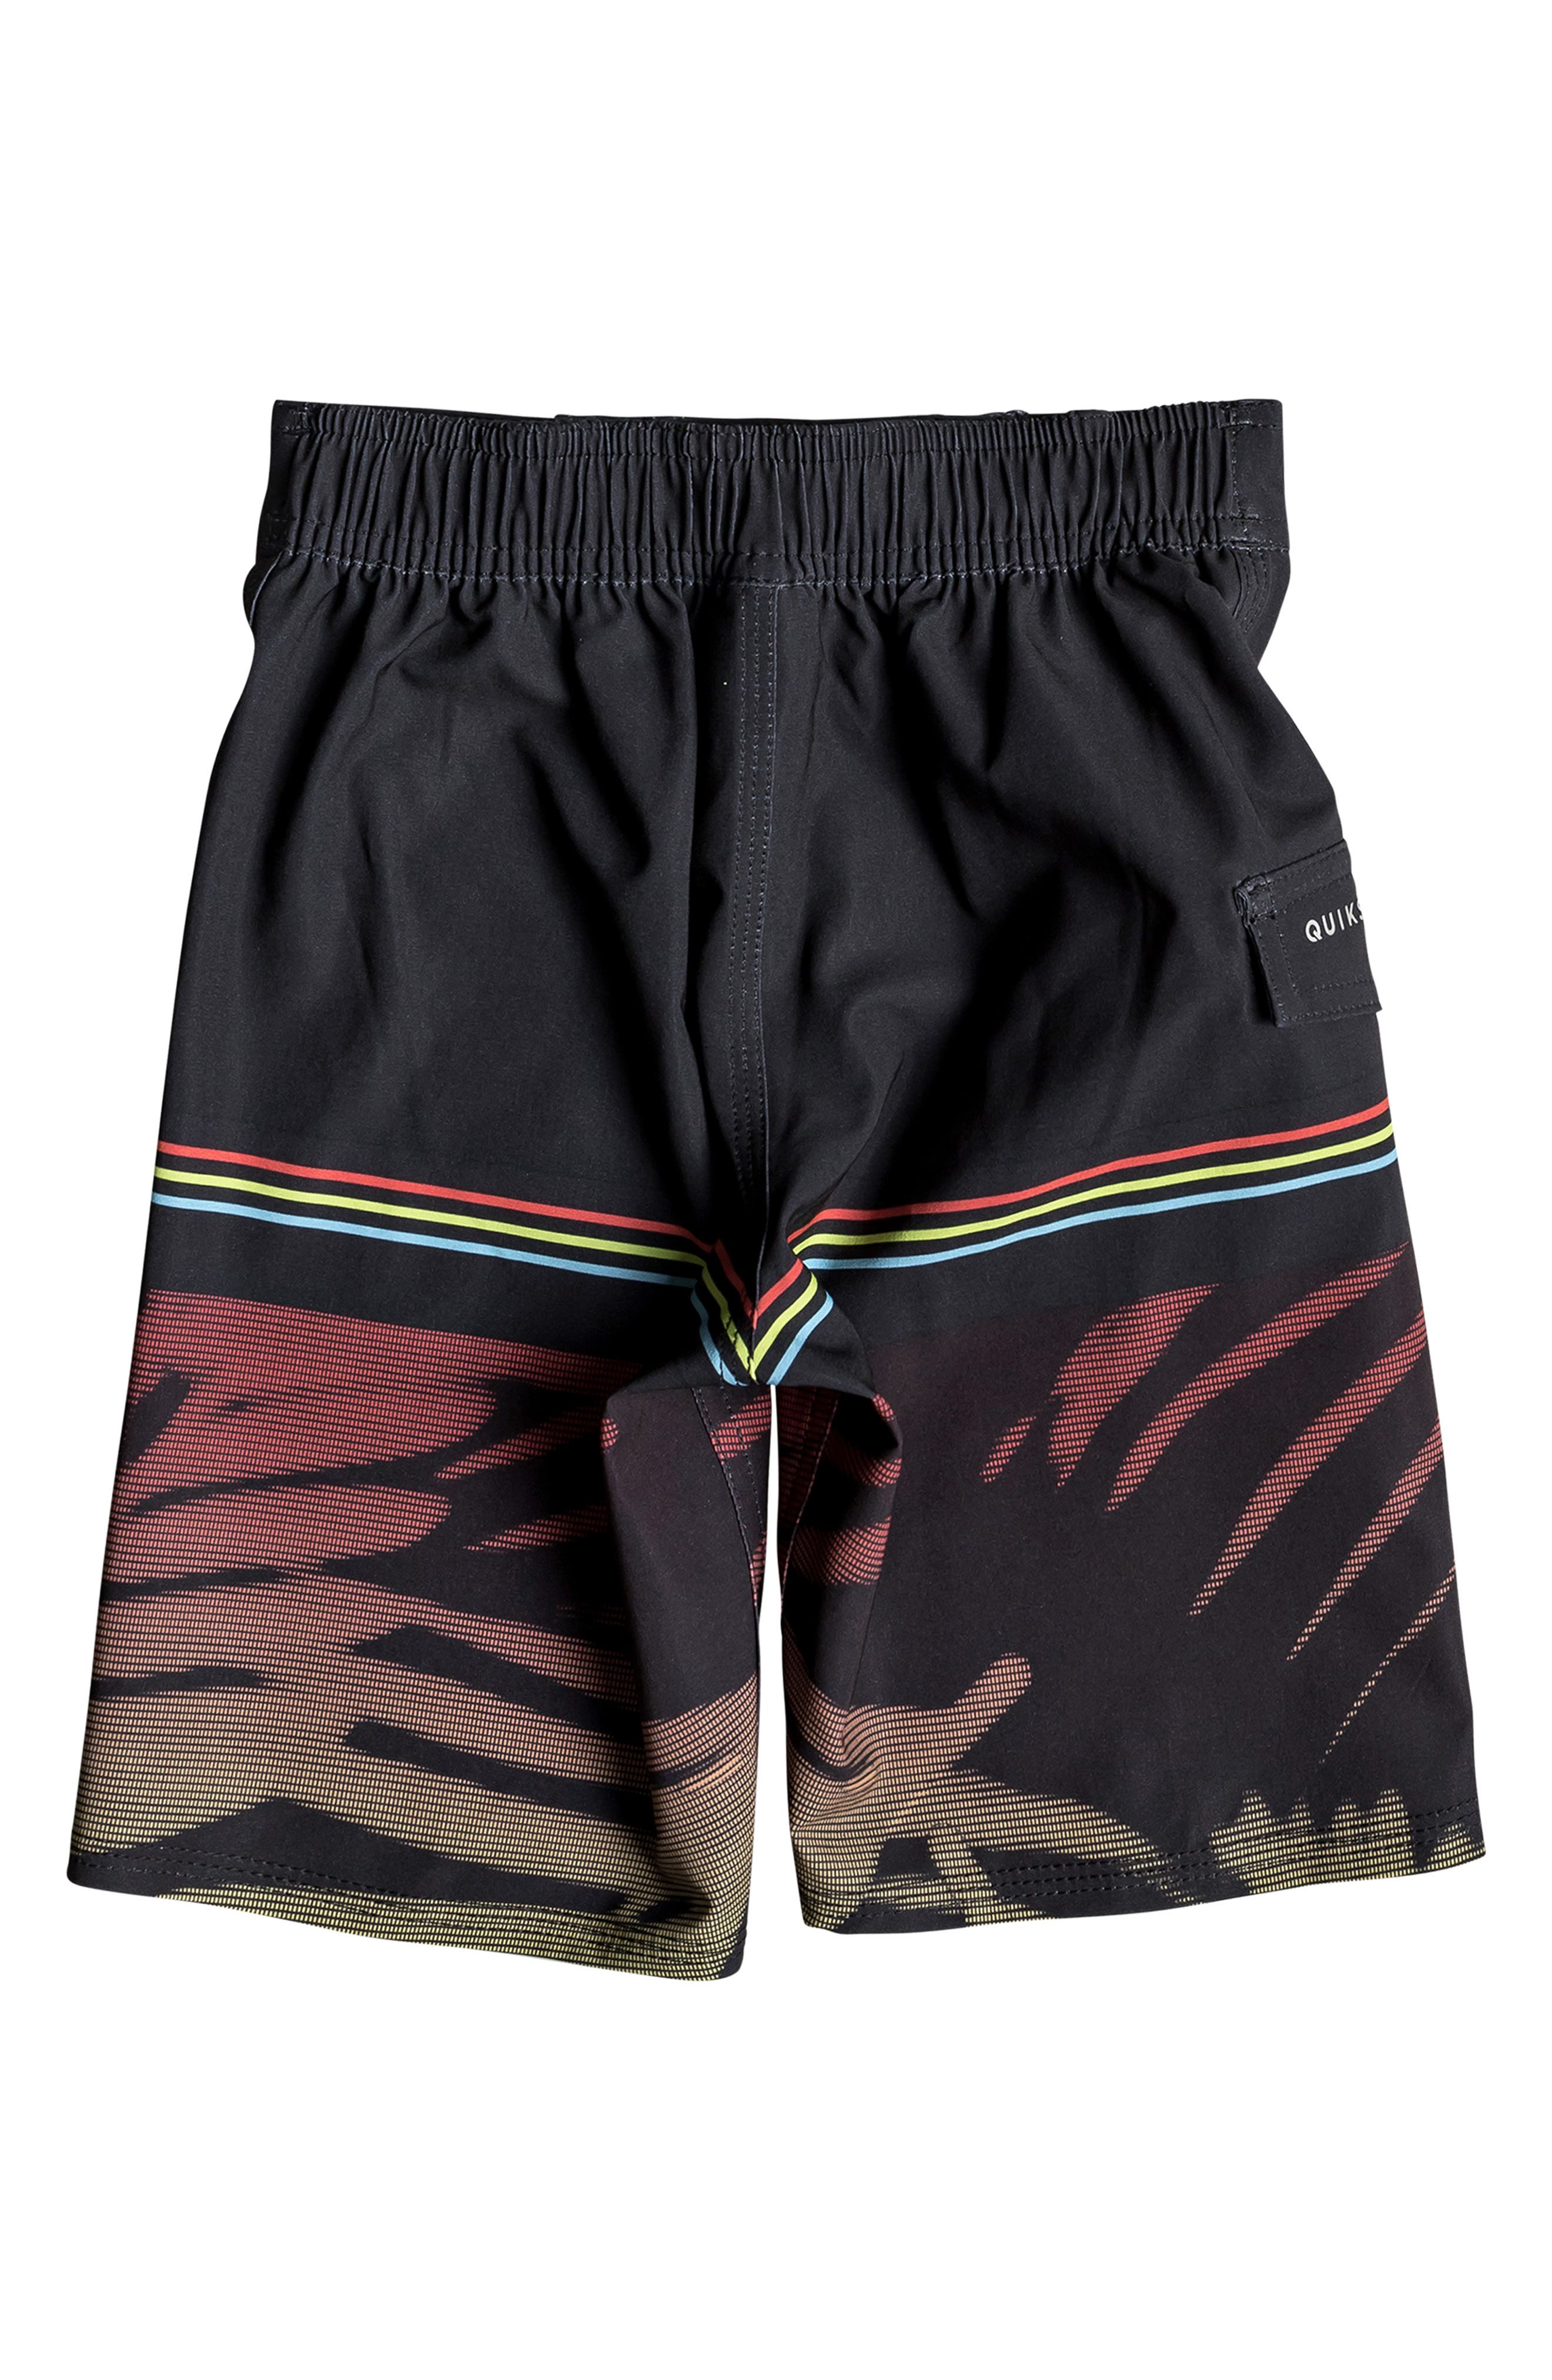 Highline Zen Board Shorts,                             Alternate thumbnail 2, color,                             BLACK